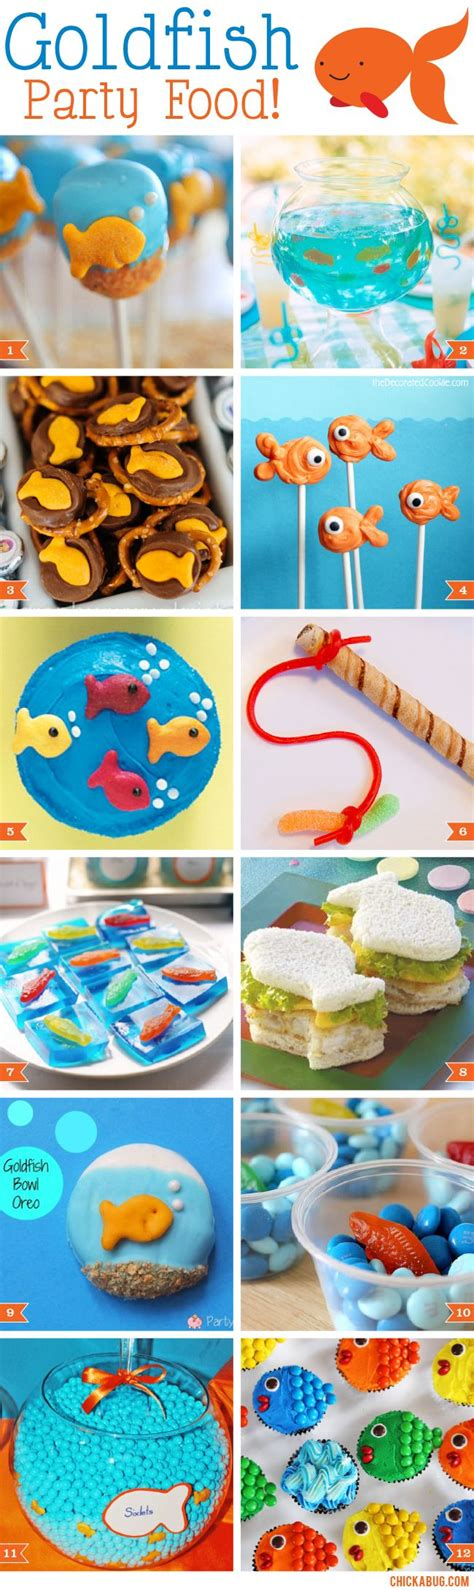 goldfish themes goldfish party food ideas goldfish party and goldfish